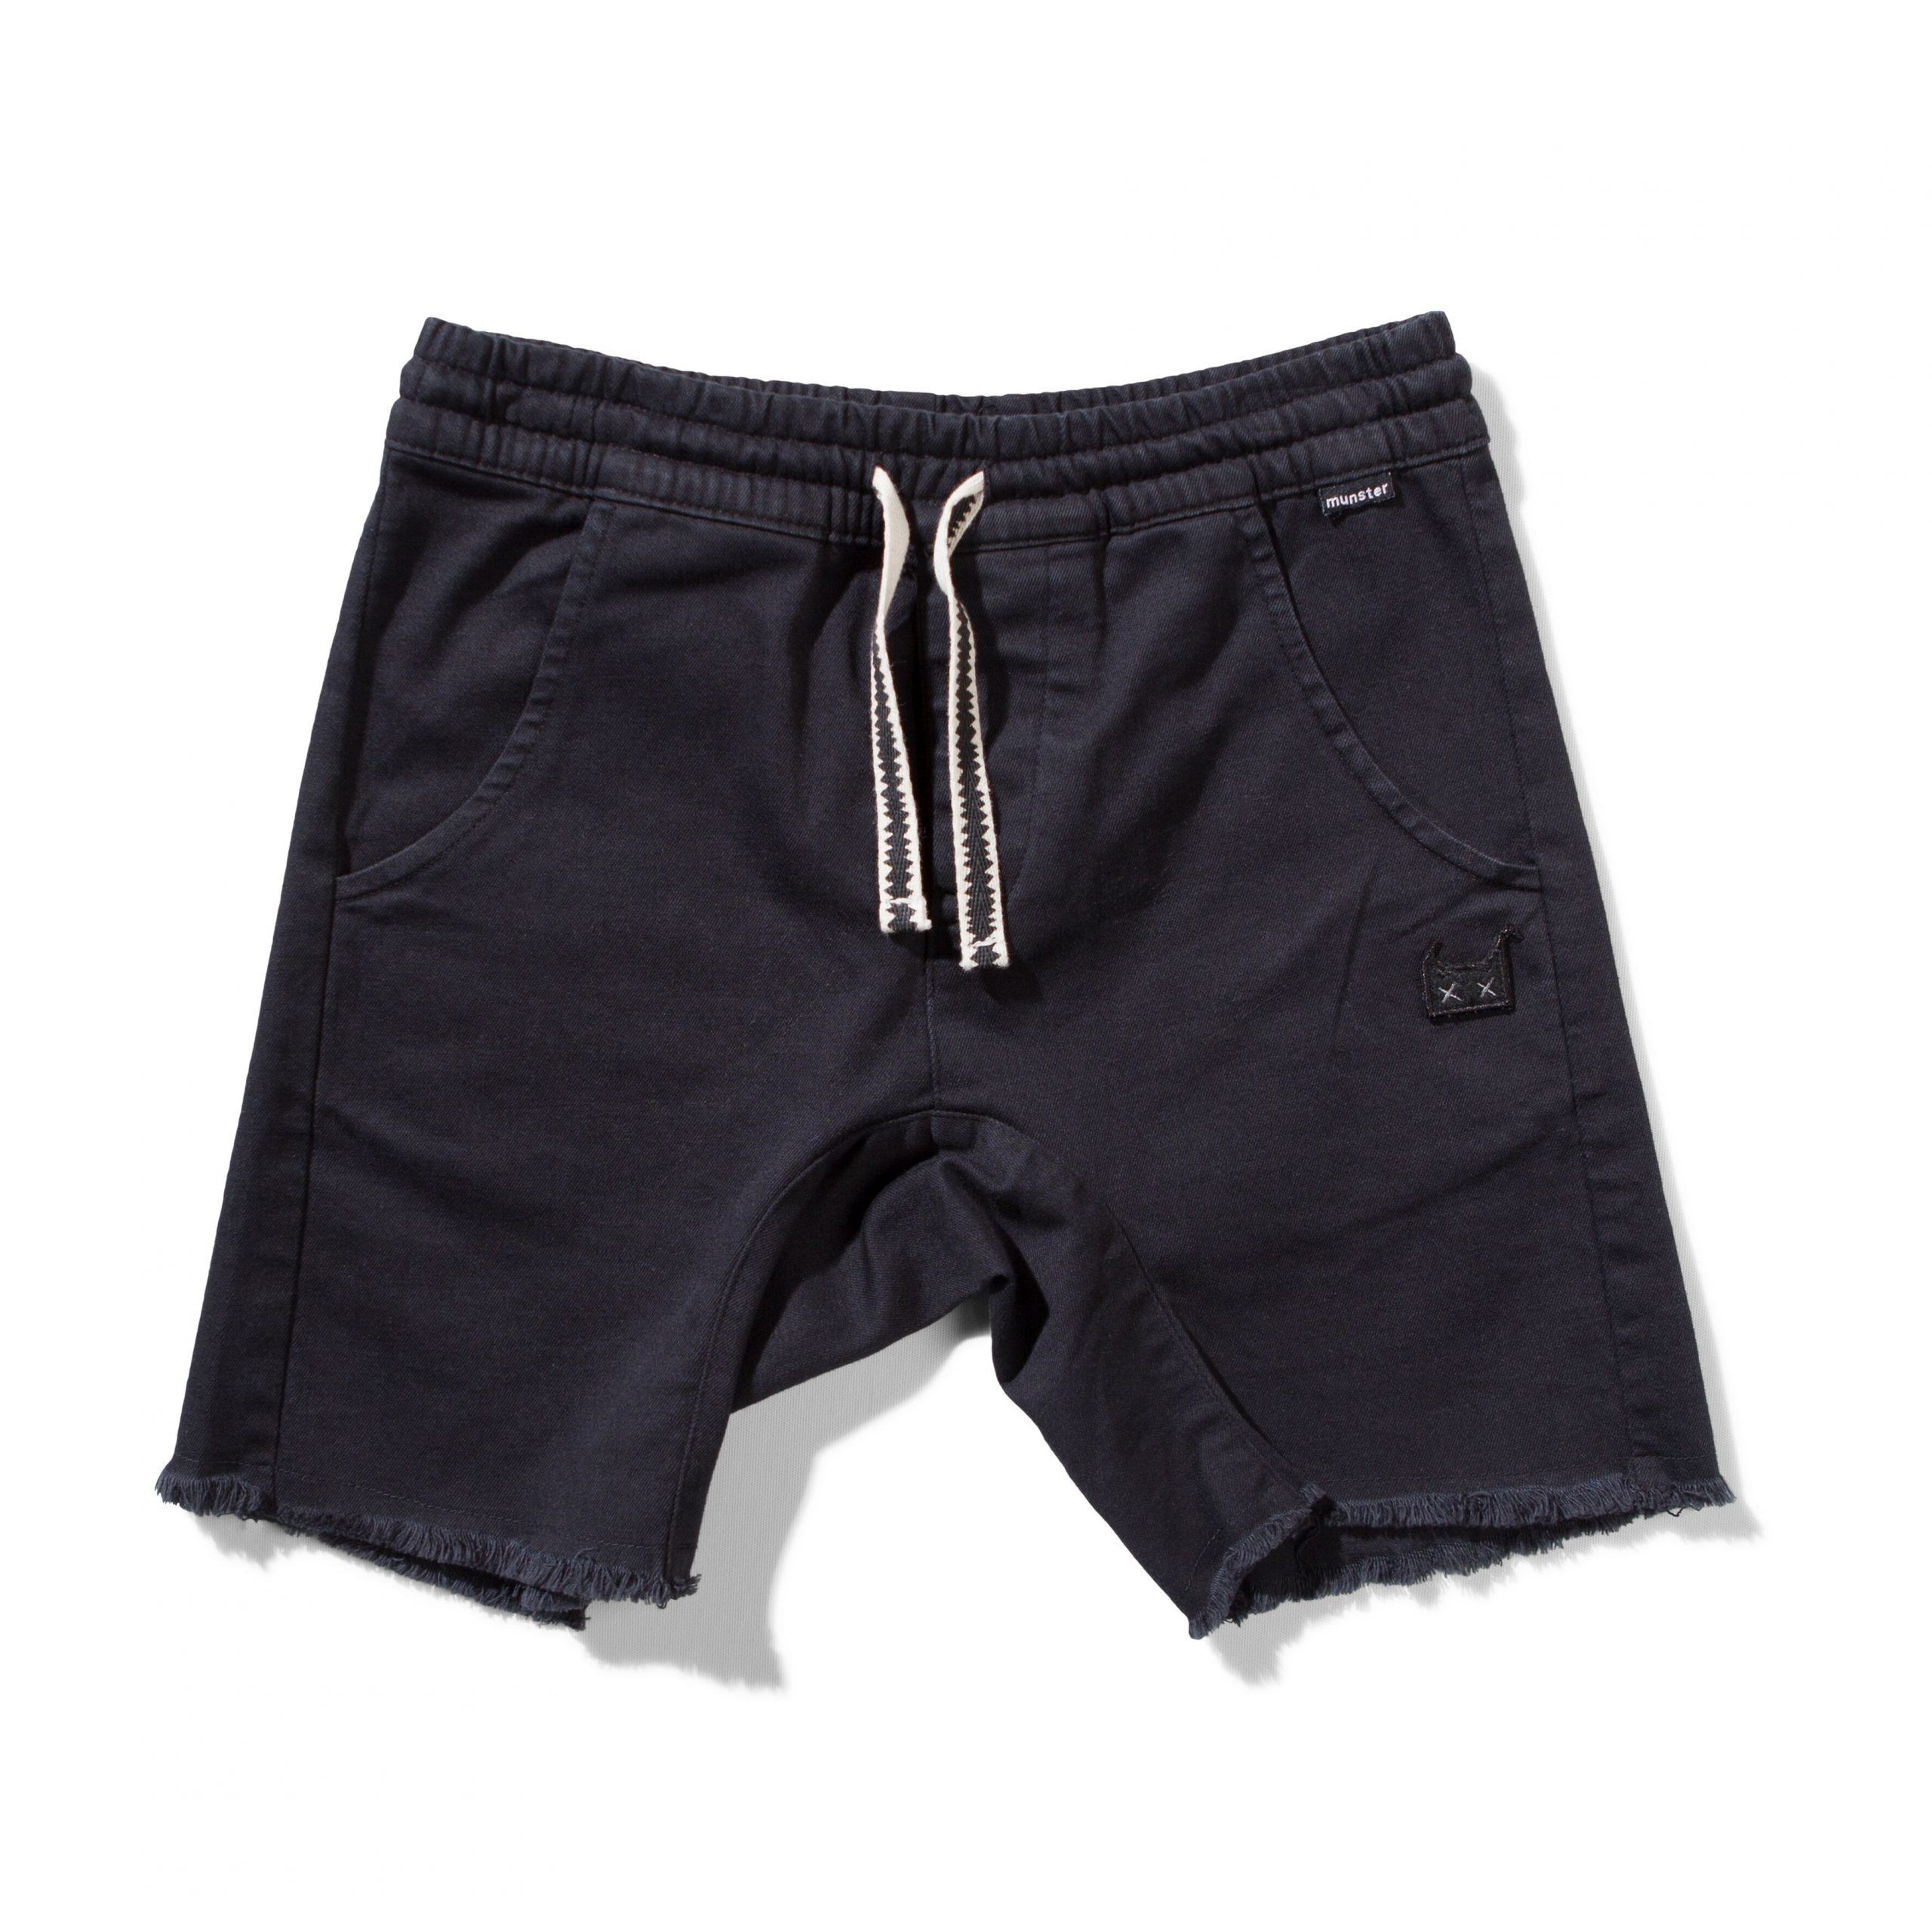 Munster Atlantic Short (black)